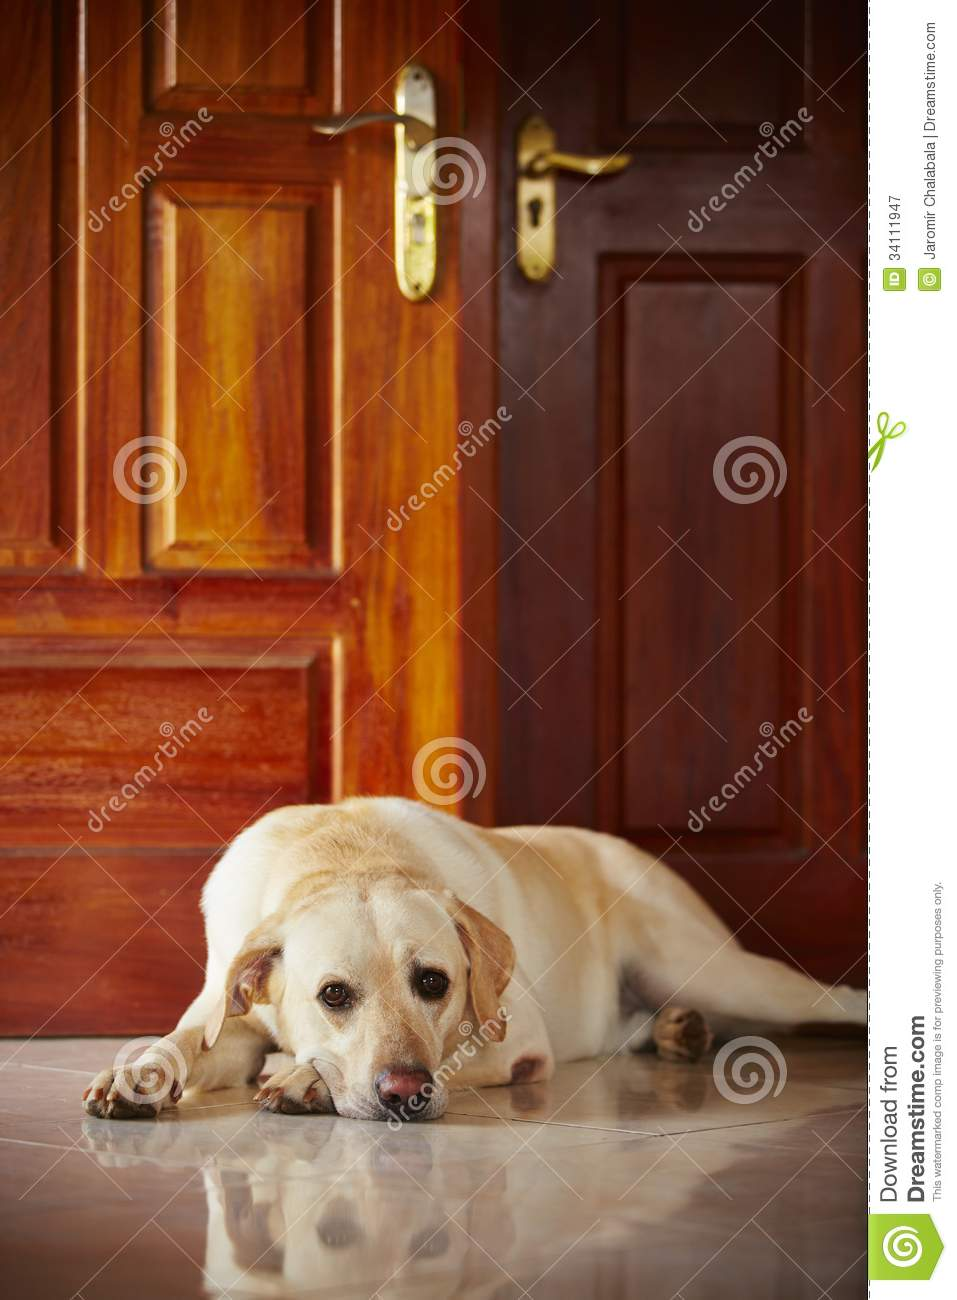 Dog at home royalty free stock photography image 34111947 for Dog house for labrador retriever